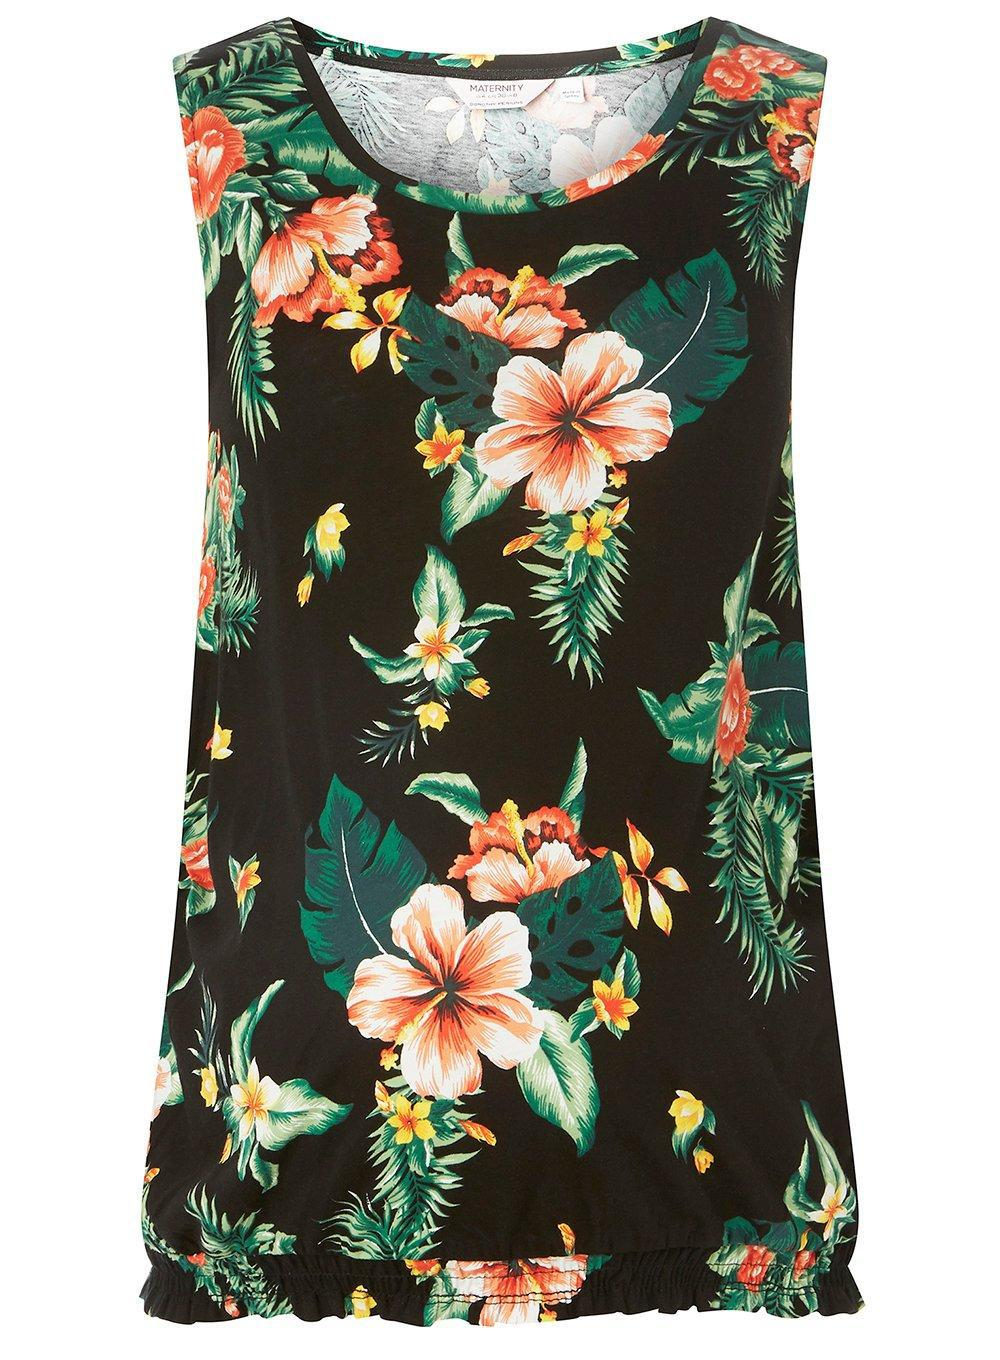 8d3bfd0fbe332 Dorothy Perkins Maternity Black Tropical Print Vest in Black - Lyst